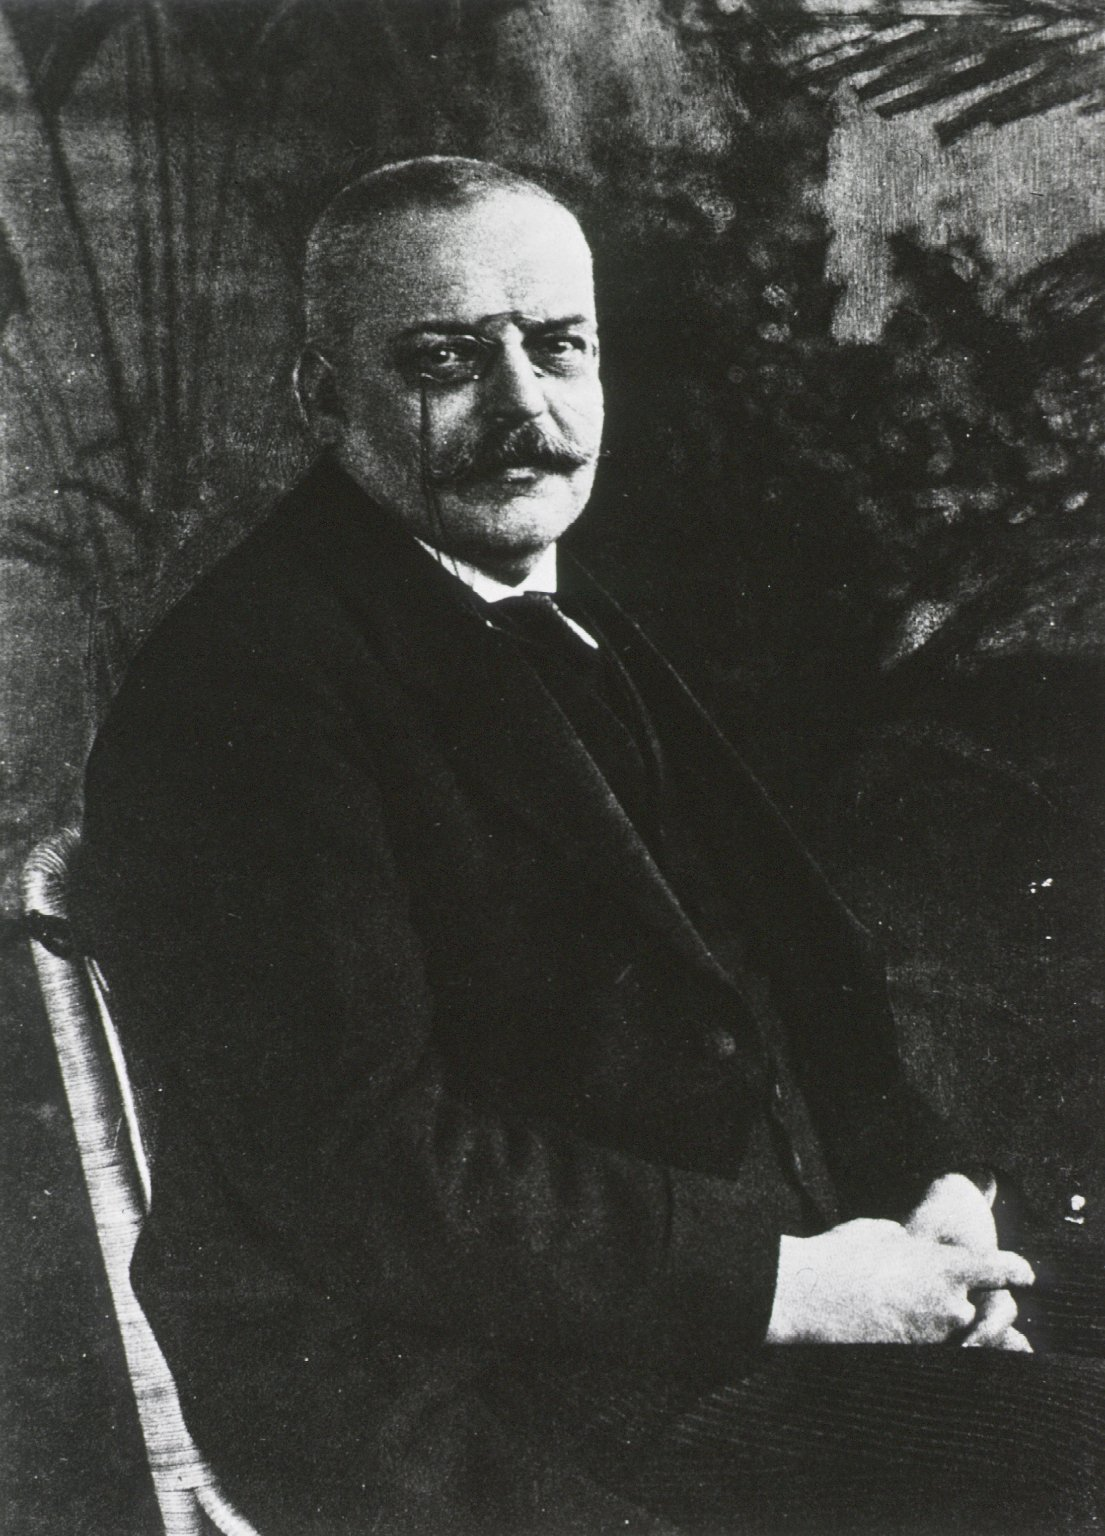 Dr. Alois Alzheimer, from Wikimedia Commons